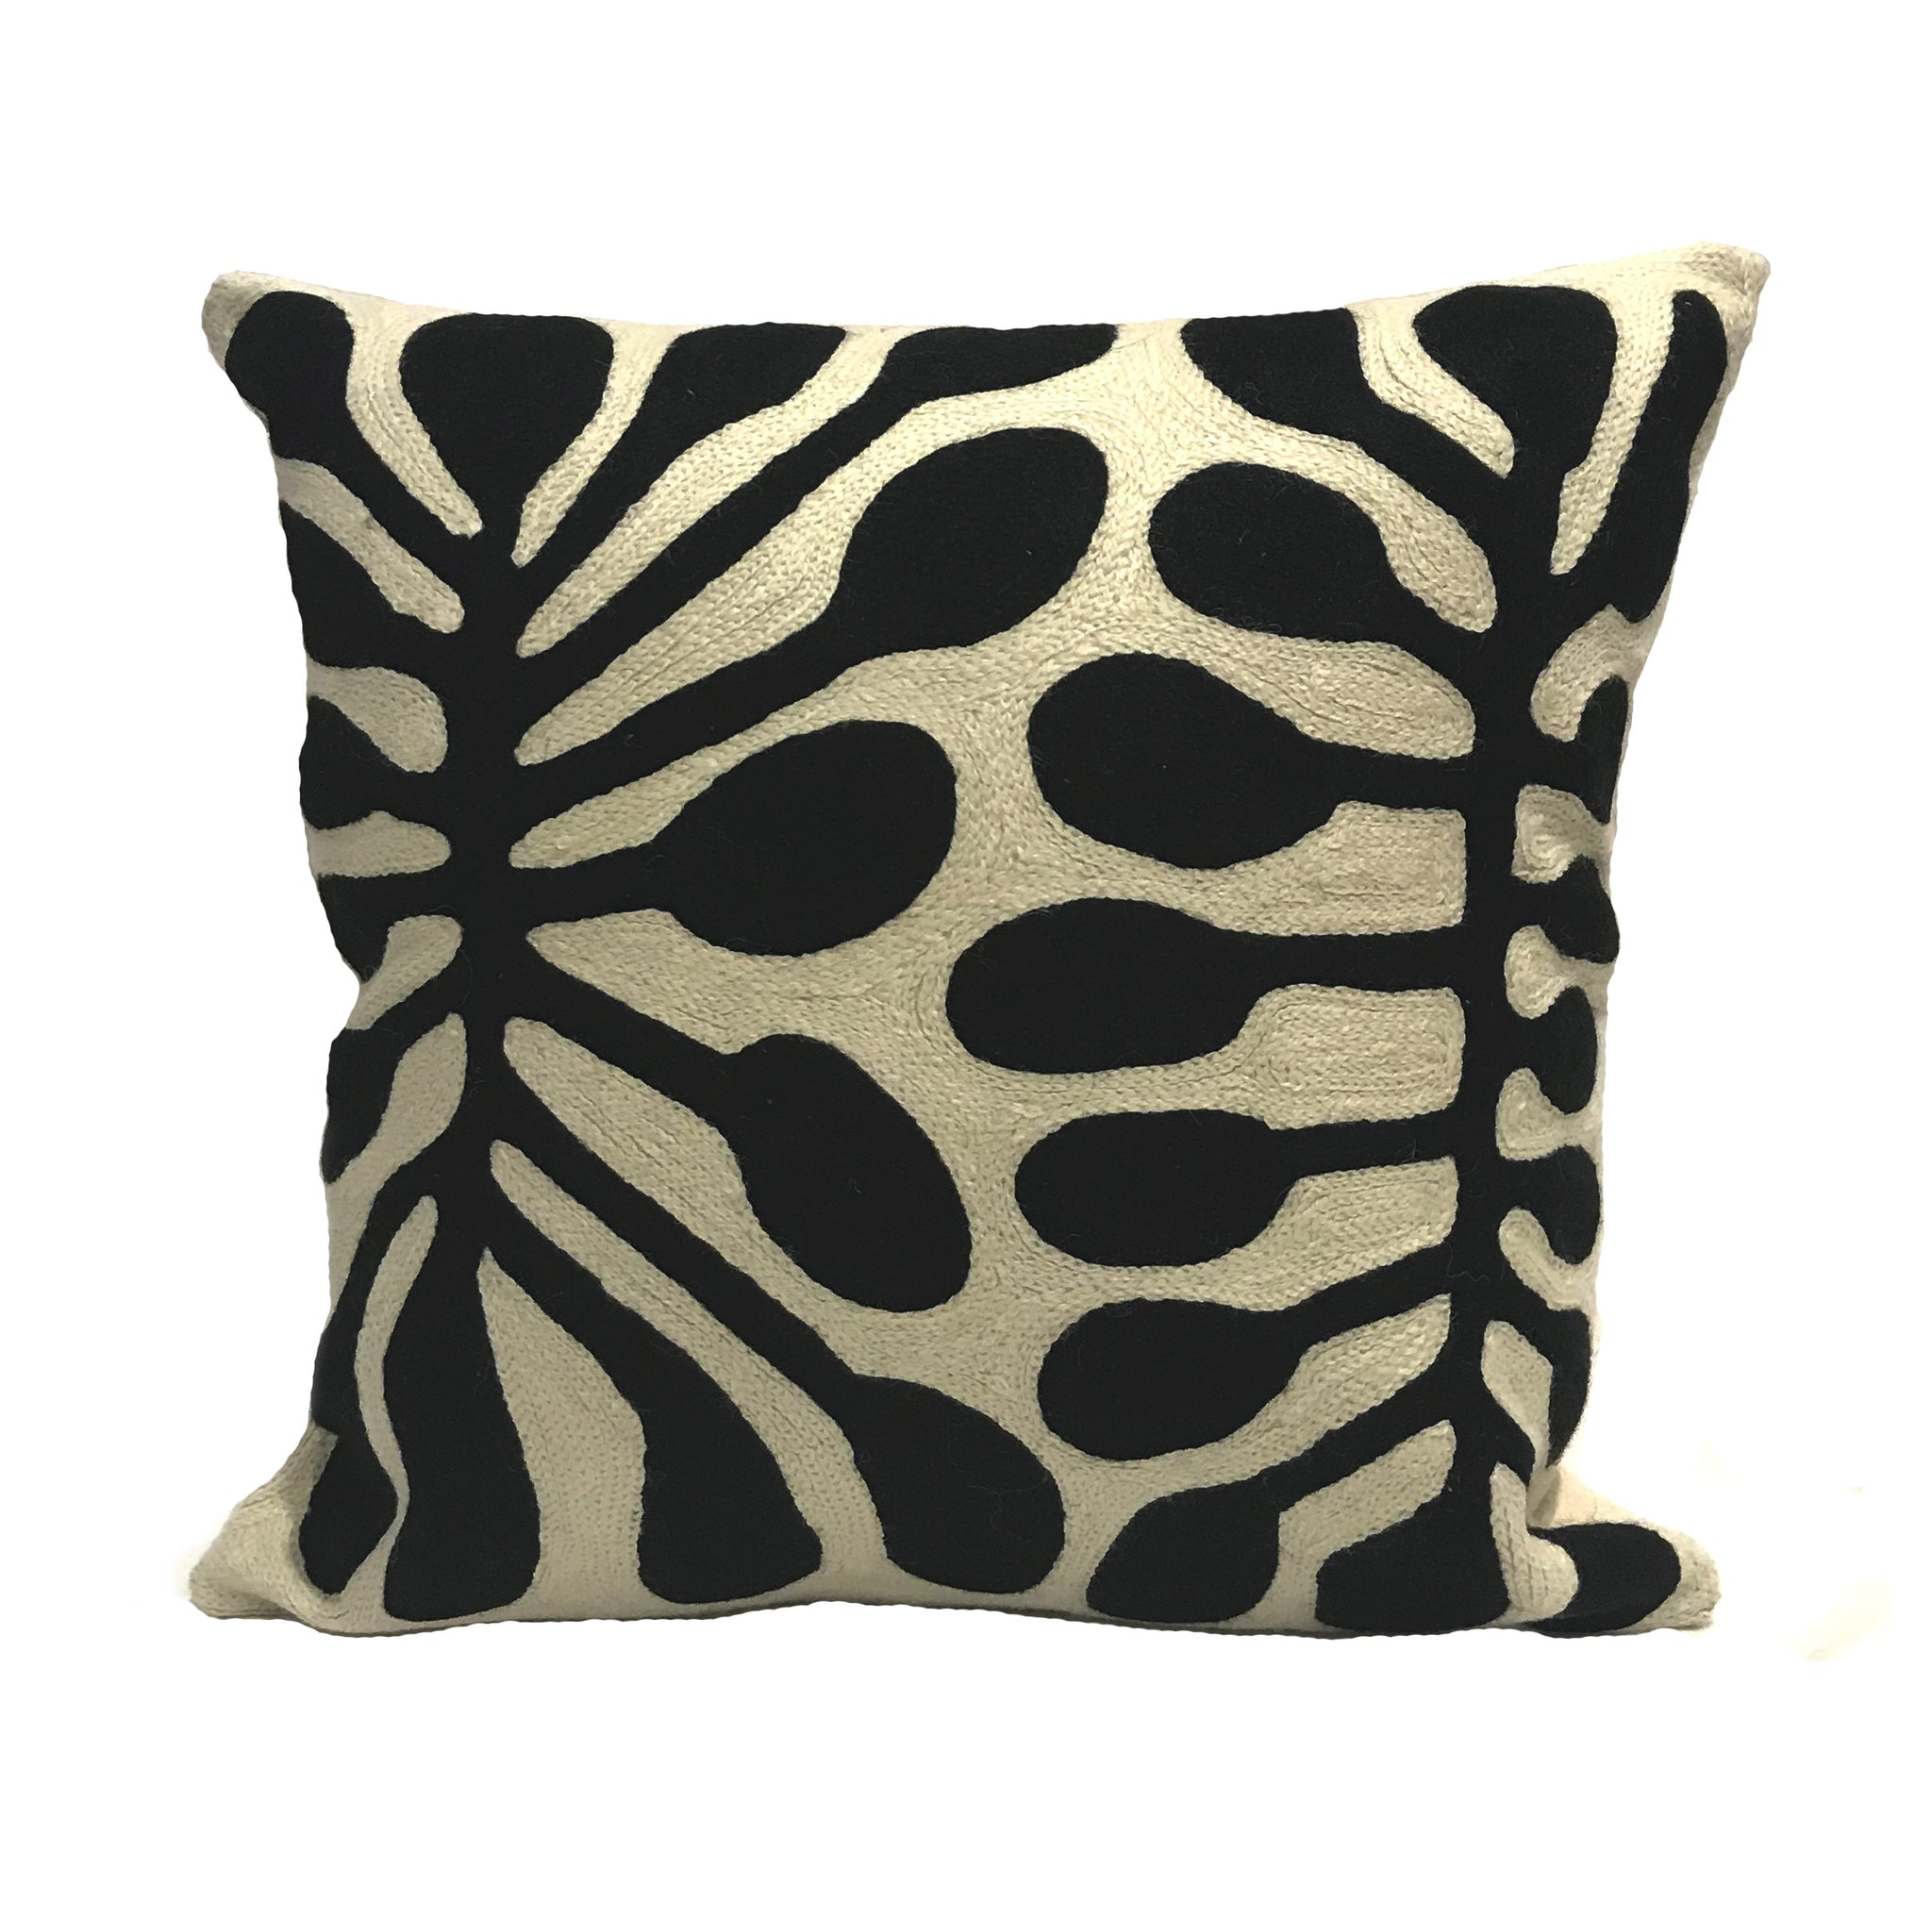 Mijtili Napurrula Black & While Cushion Cover